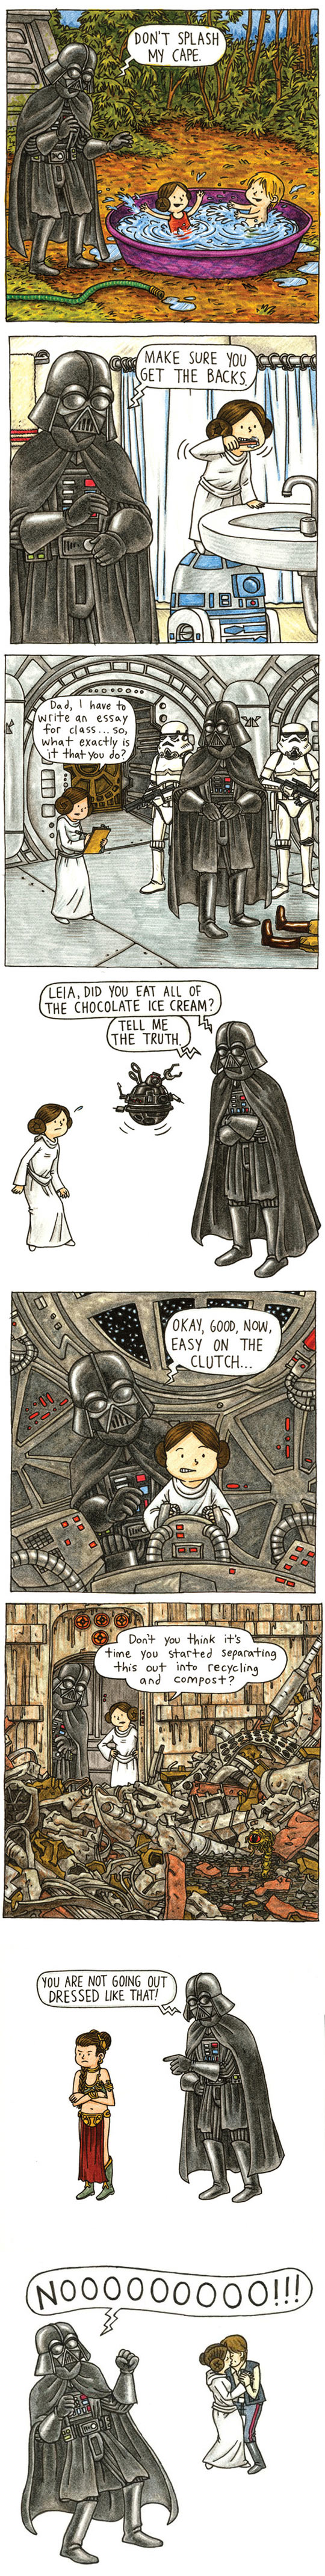 cool-Darth-Vader-father-adventure